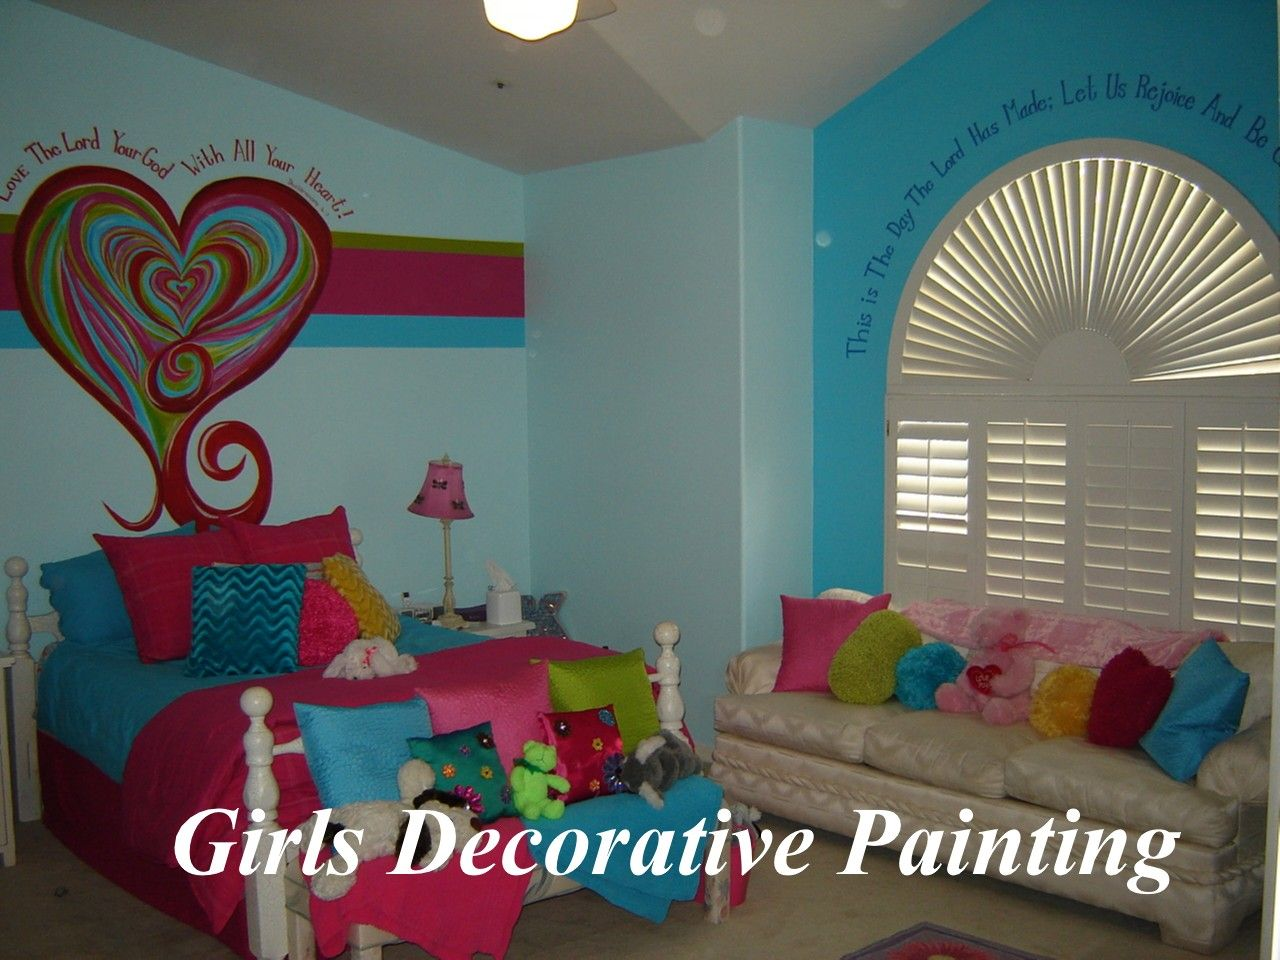 Bedroom paint ideas for girls - Girls Decorative Wall Painting Painting Stripes On Walls Painting Ideas For A Kids Room Kitchen Painting Ideas